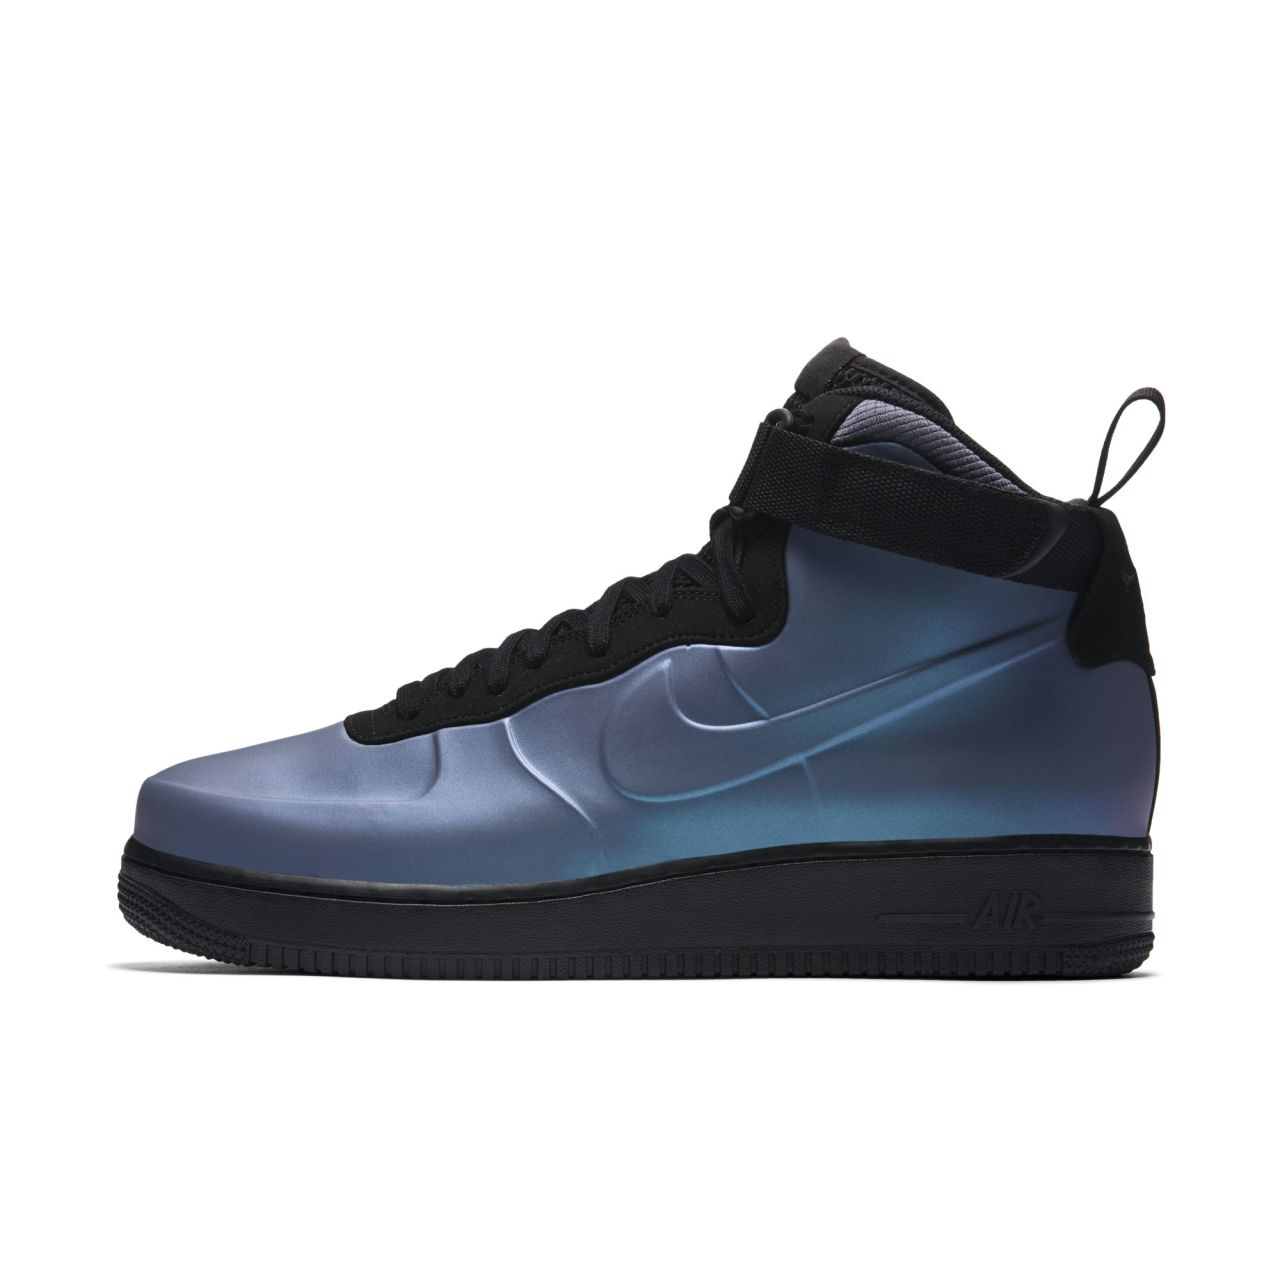 ce1848b3622d4 Nike Air Force 1 Foamposite returns this year